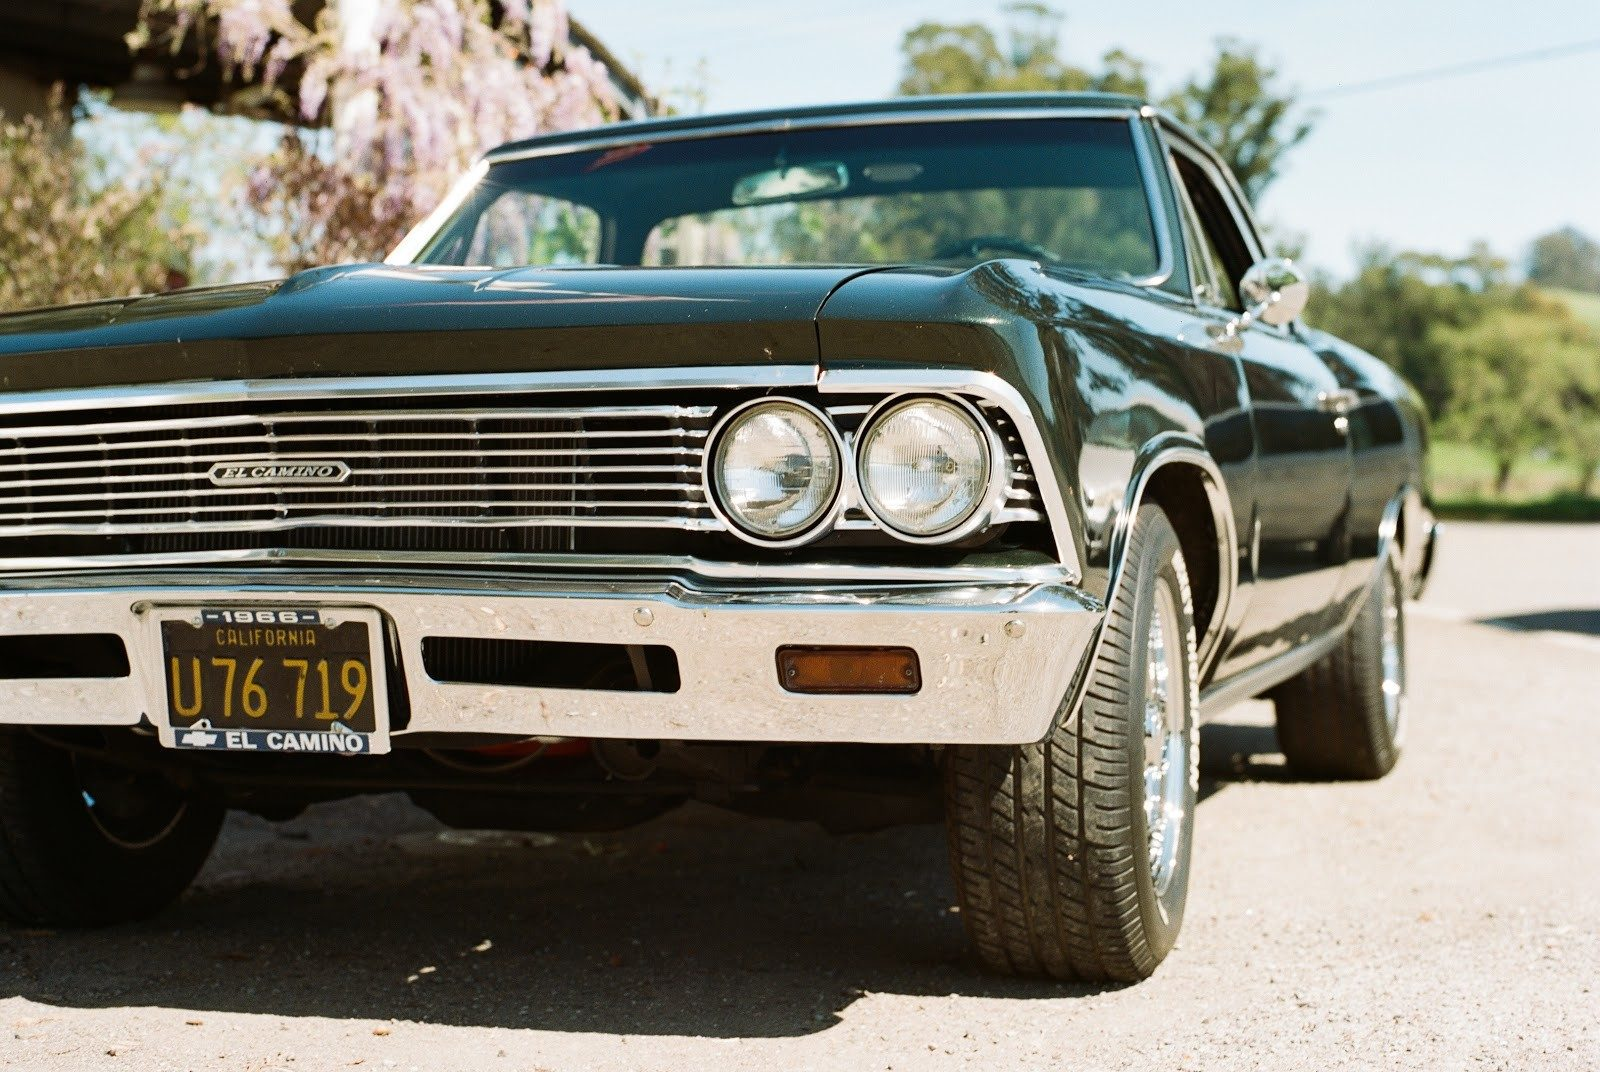 Tips for Taking Care of Your Classic Car